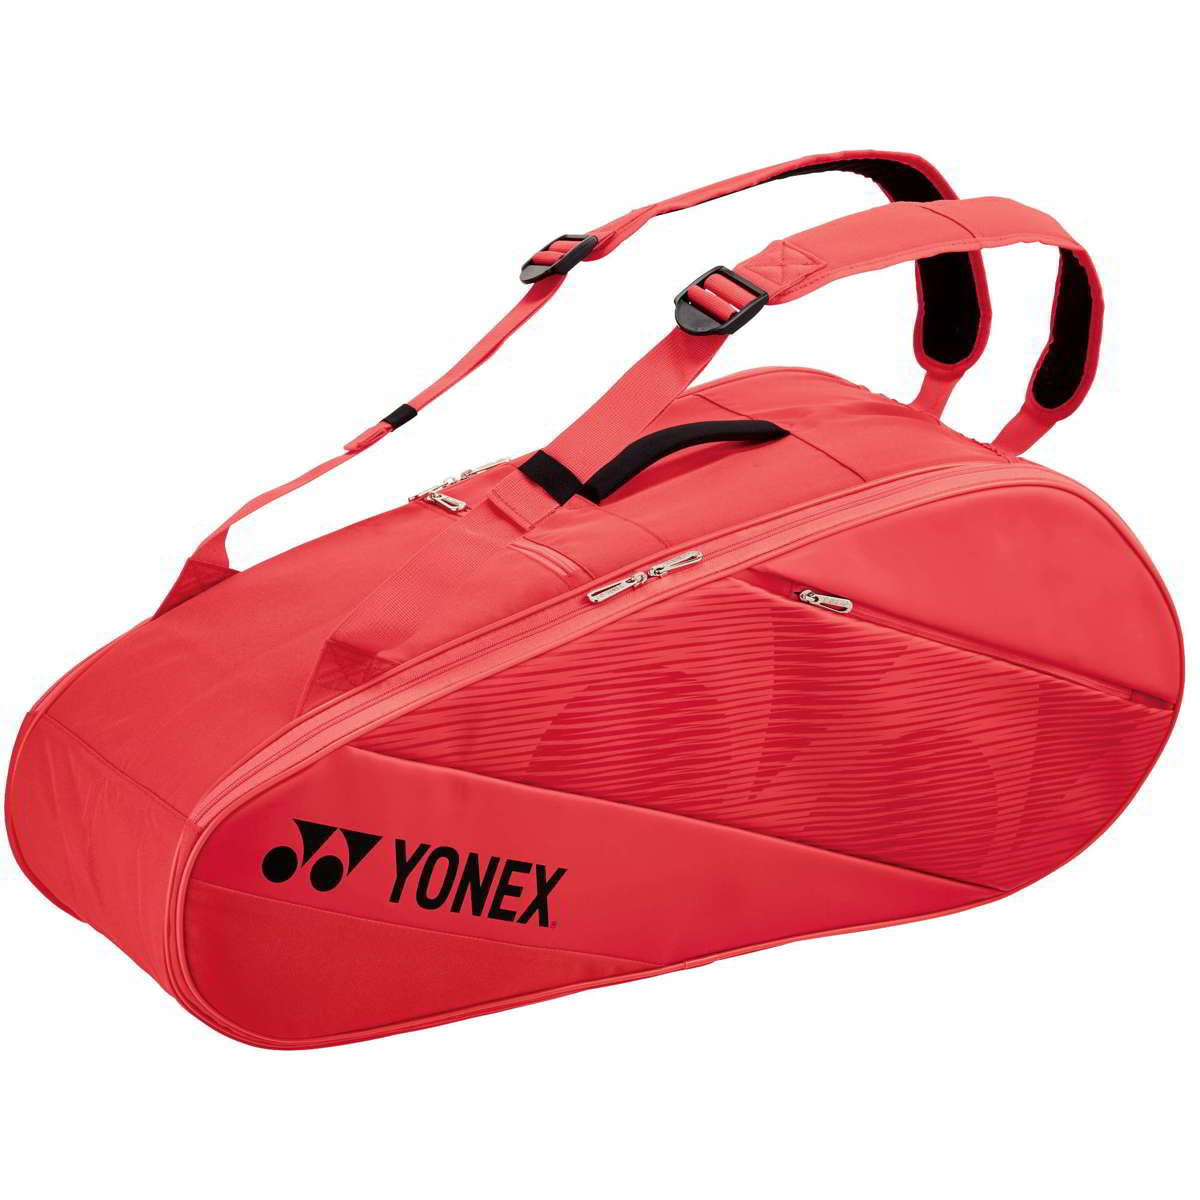 Yonex Active Bag 6R 8202 Red